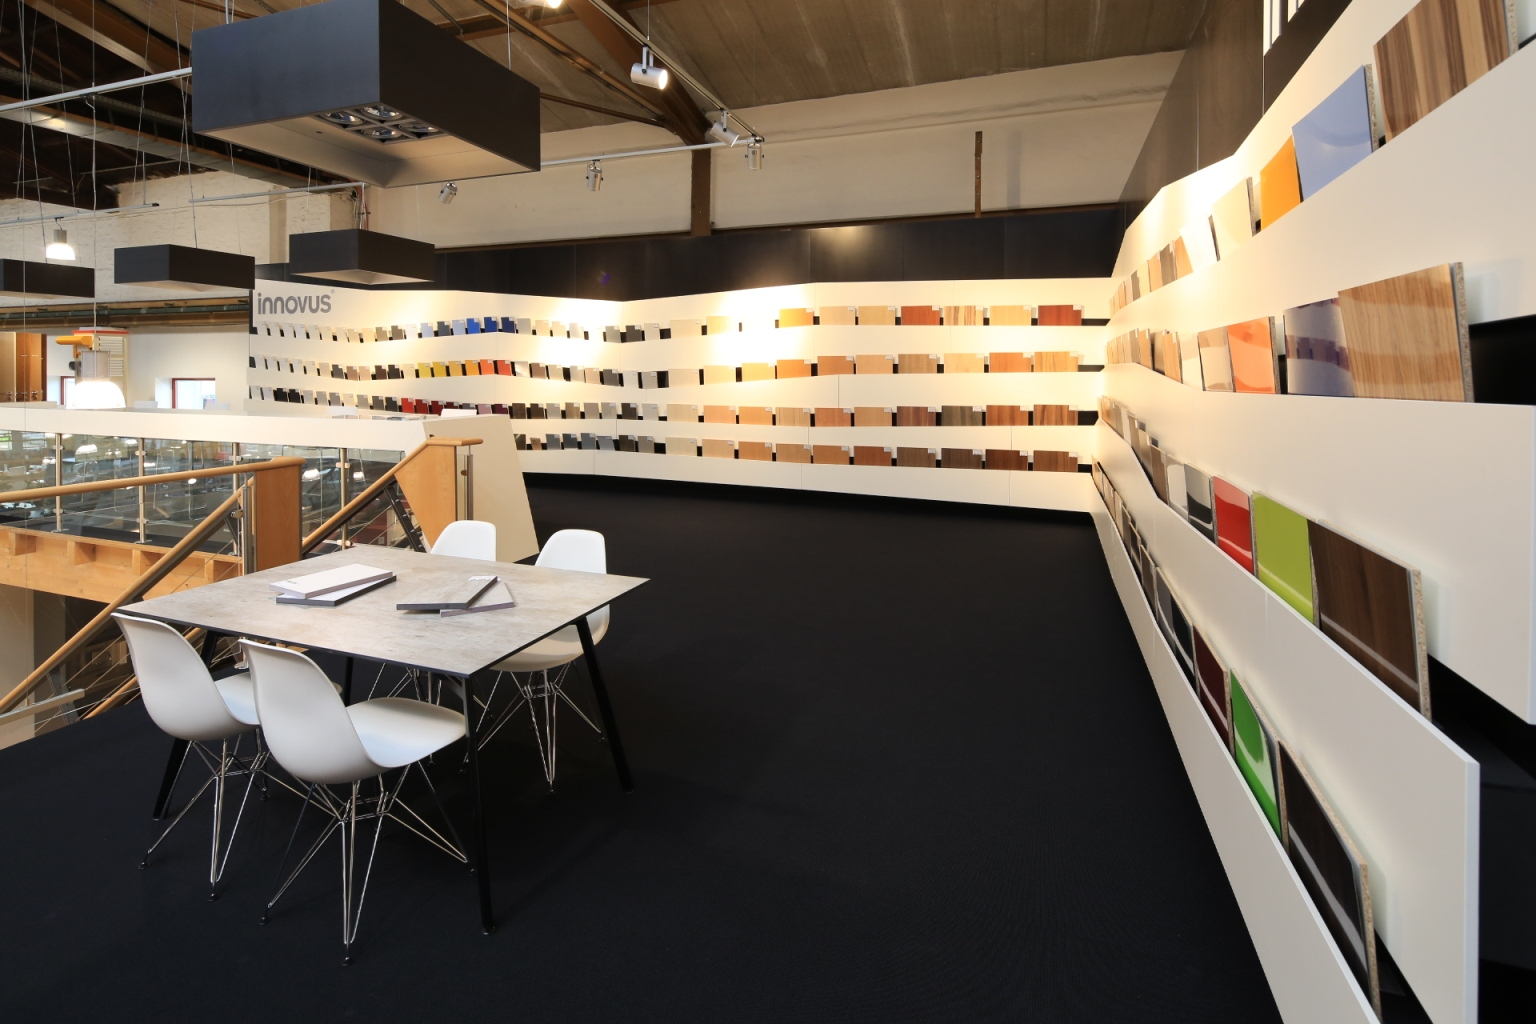 ... ® Showroom will be another eye-catcher regarding shape and colour